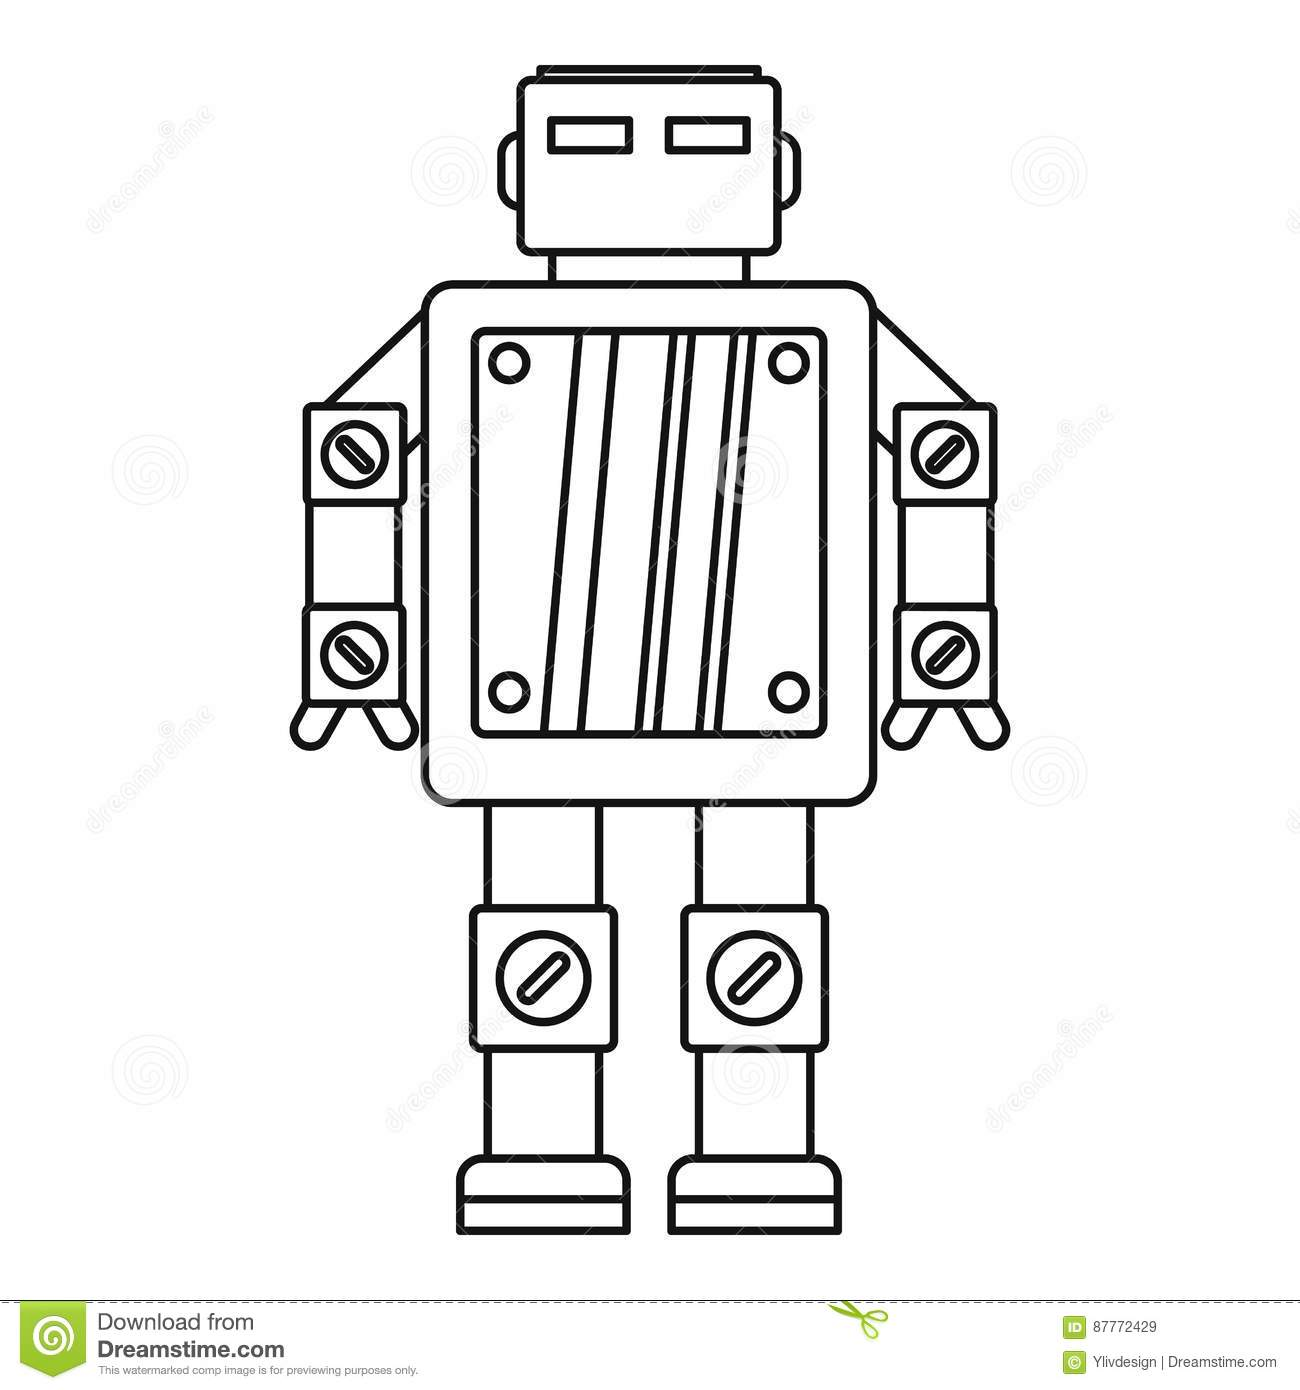 artificial intelligence essay outline The following outline is provided as an overview of and topical guide to artificial intelligence:  artificial intelligence (ai) – intelligence exhibited by machines or software.